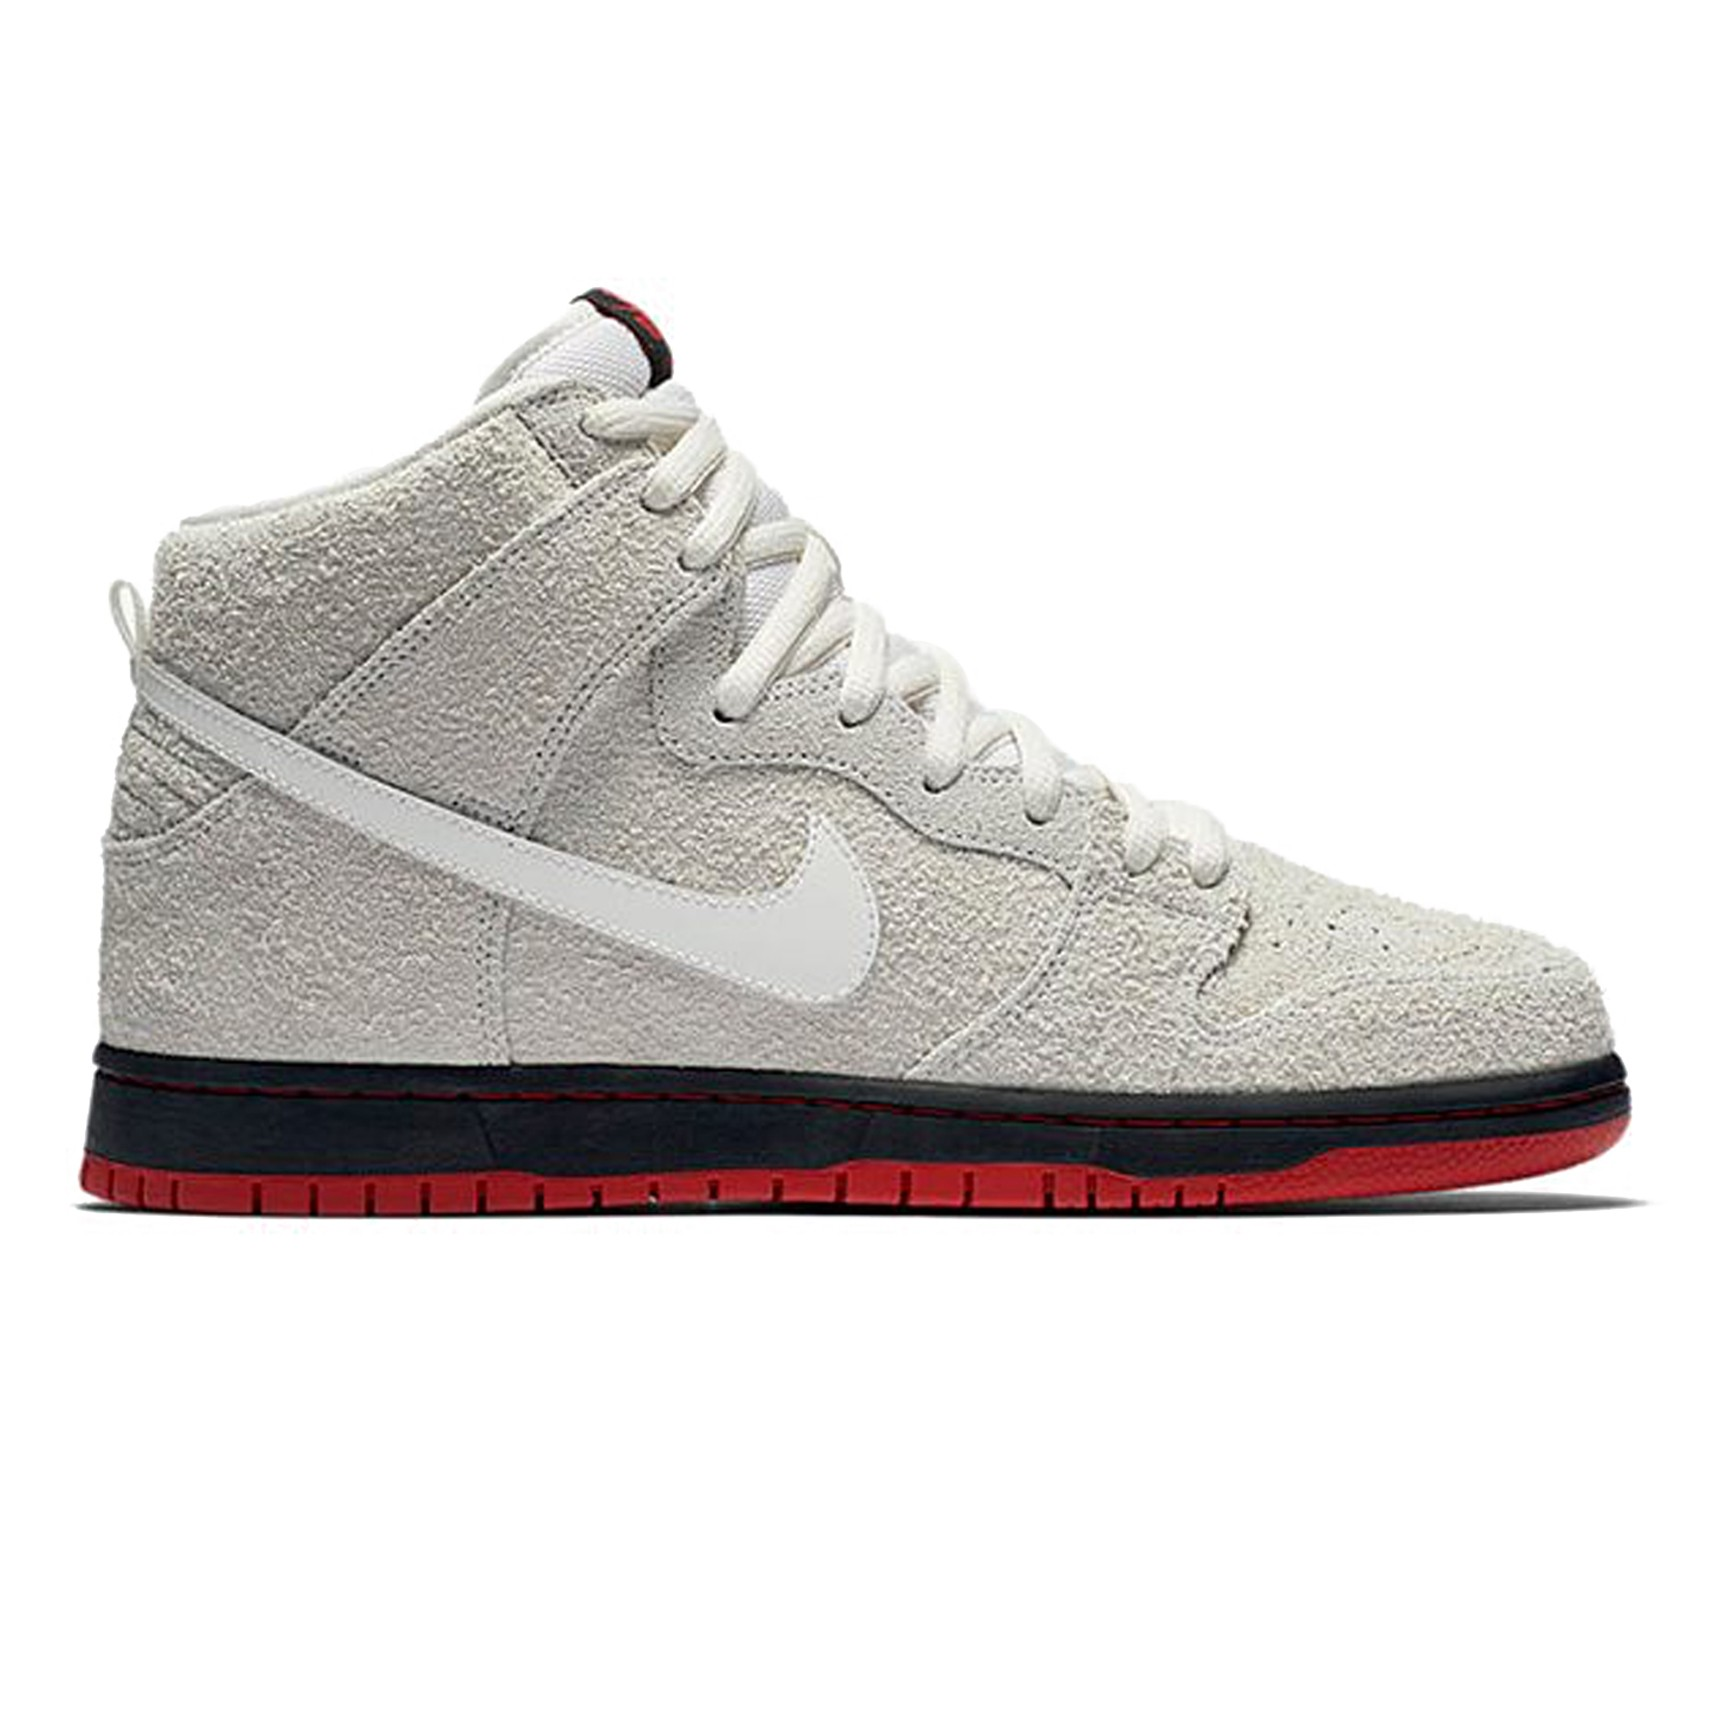 new products da488 38cf6 ... DUNK HI PRM BLACKSHEEP PAID IN FULL 313171-170 SHOES official a6c1a NIKE  SB .